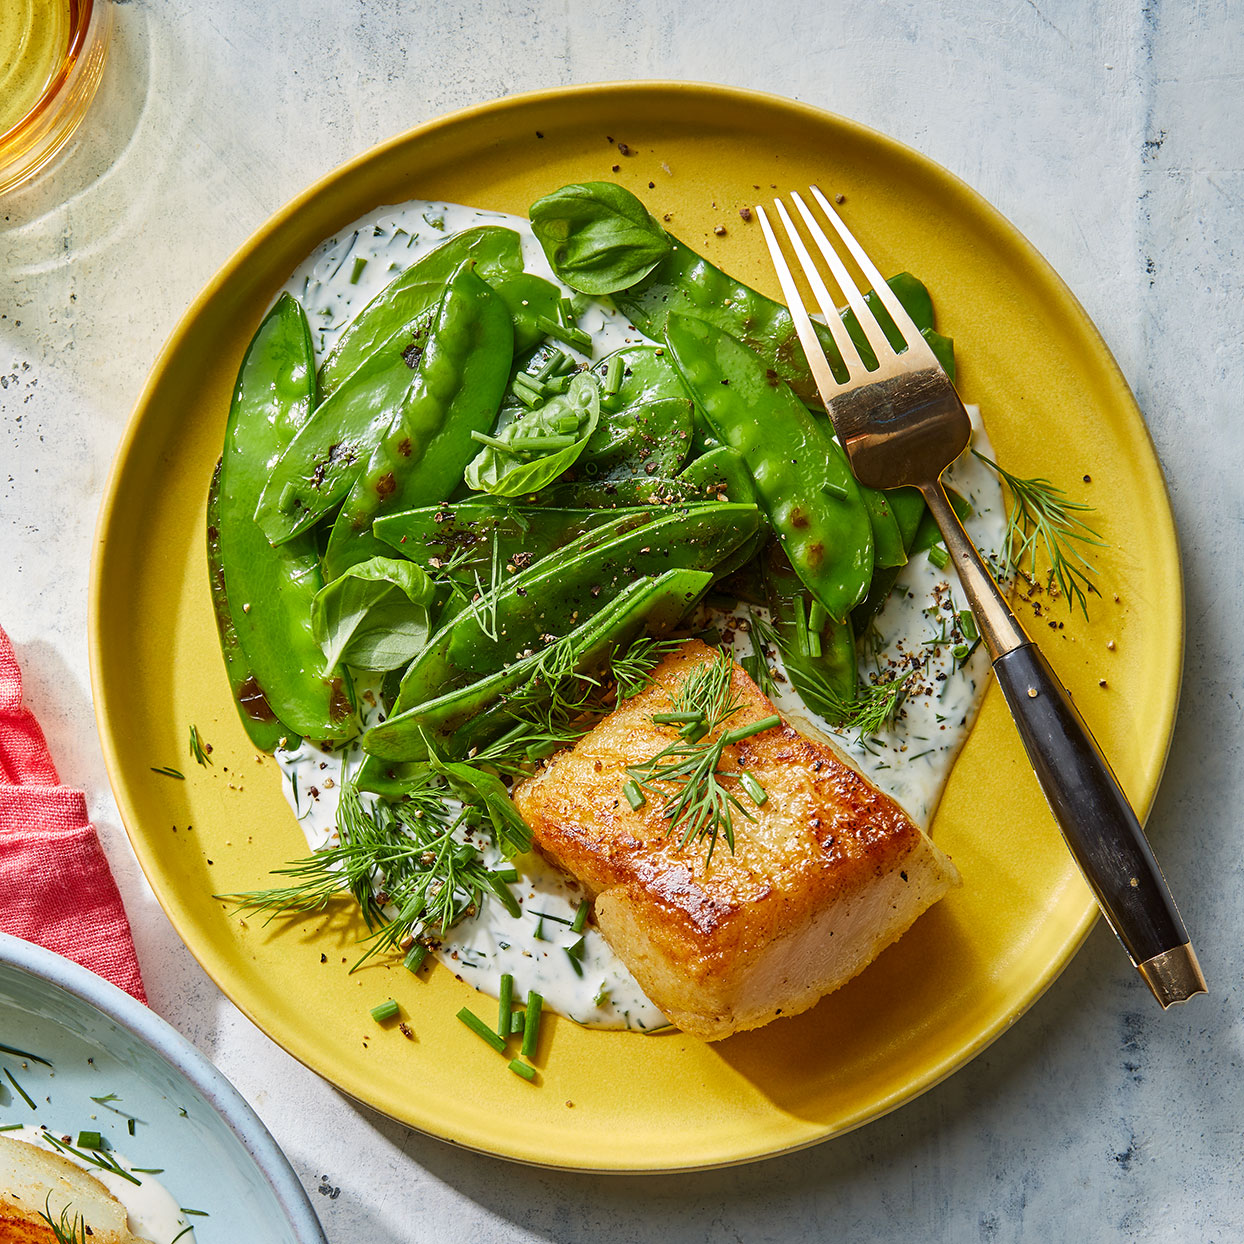 Crispy Cod with Charred Snow Peas & Creamy Herb Sauce